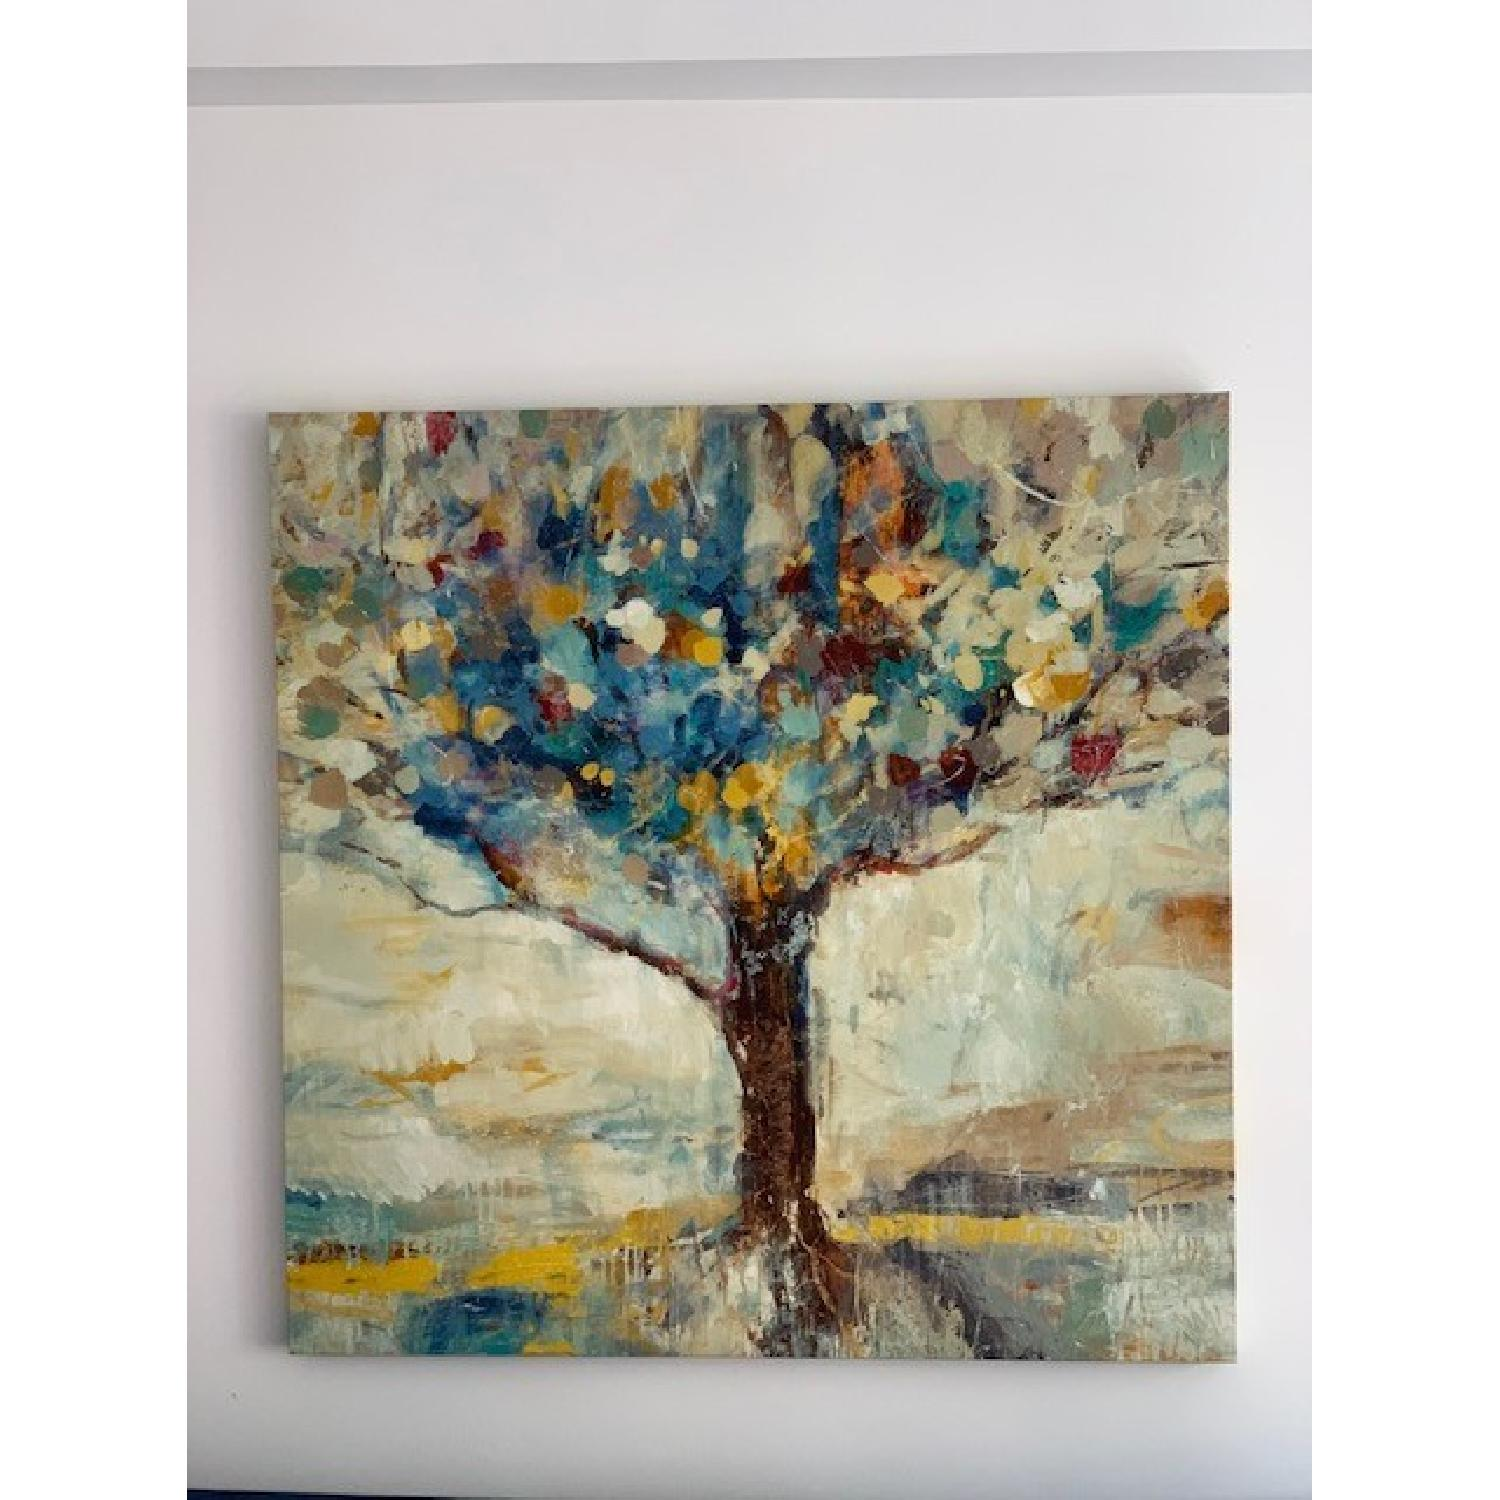 Ballard Designs Tree Giclee Cotton Canvas on Wood Frame - image-1